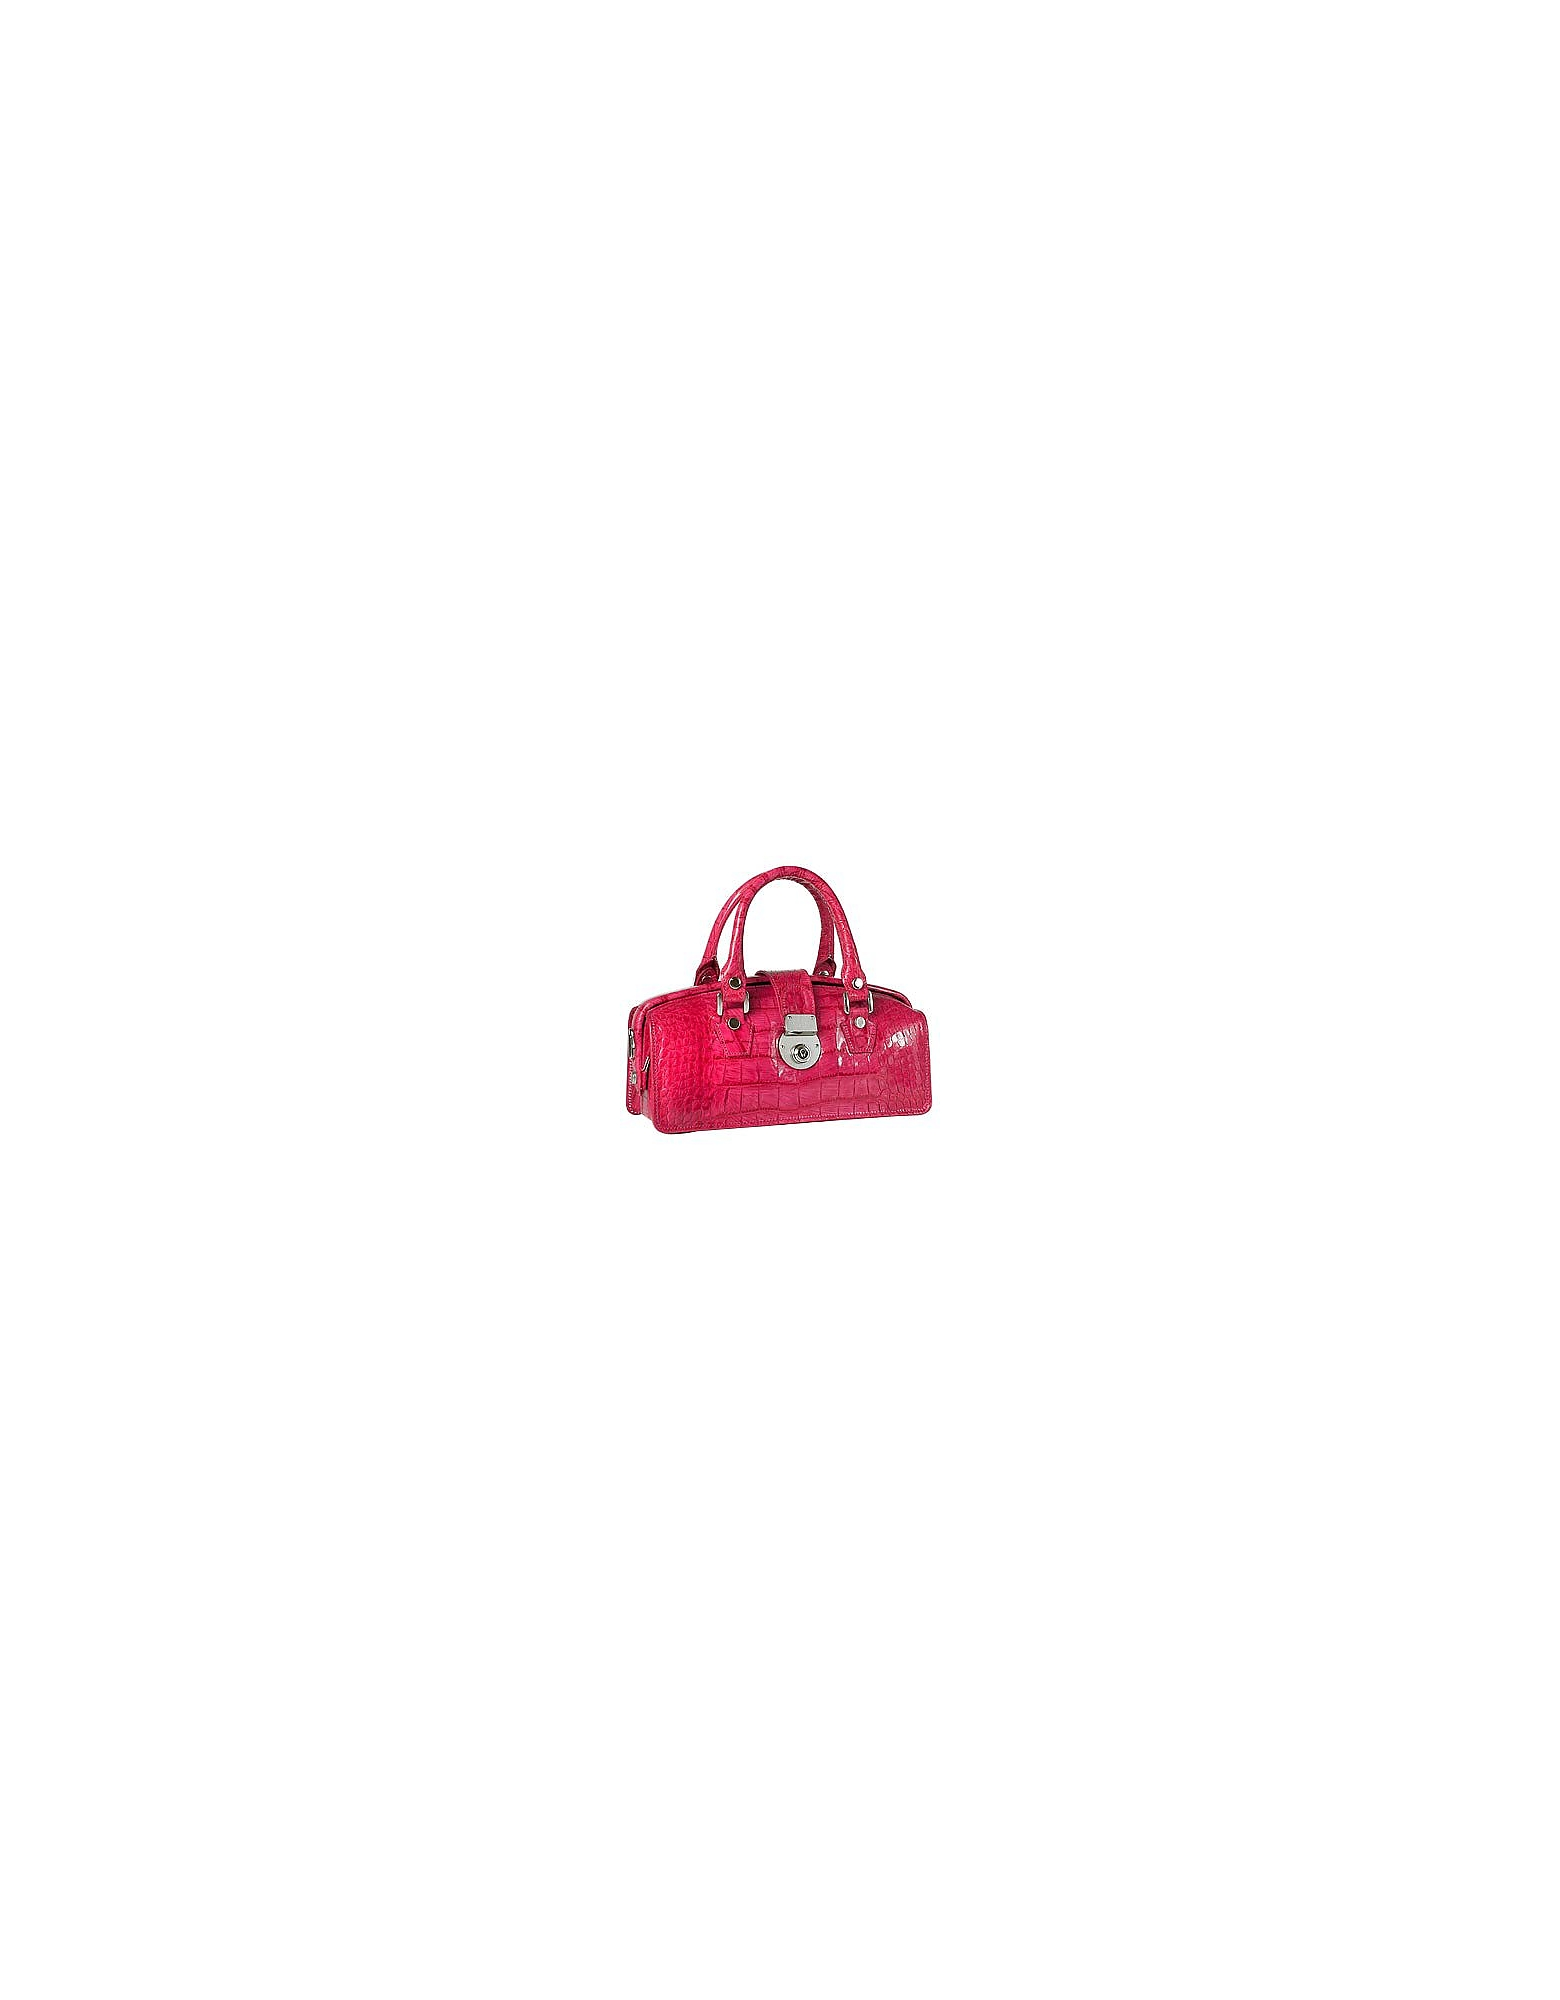 L.A.P.A. Handbags, Hot Pink Croco-embossed Mini Doctor Style Bag